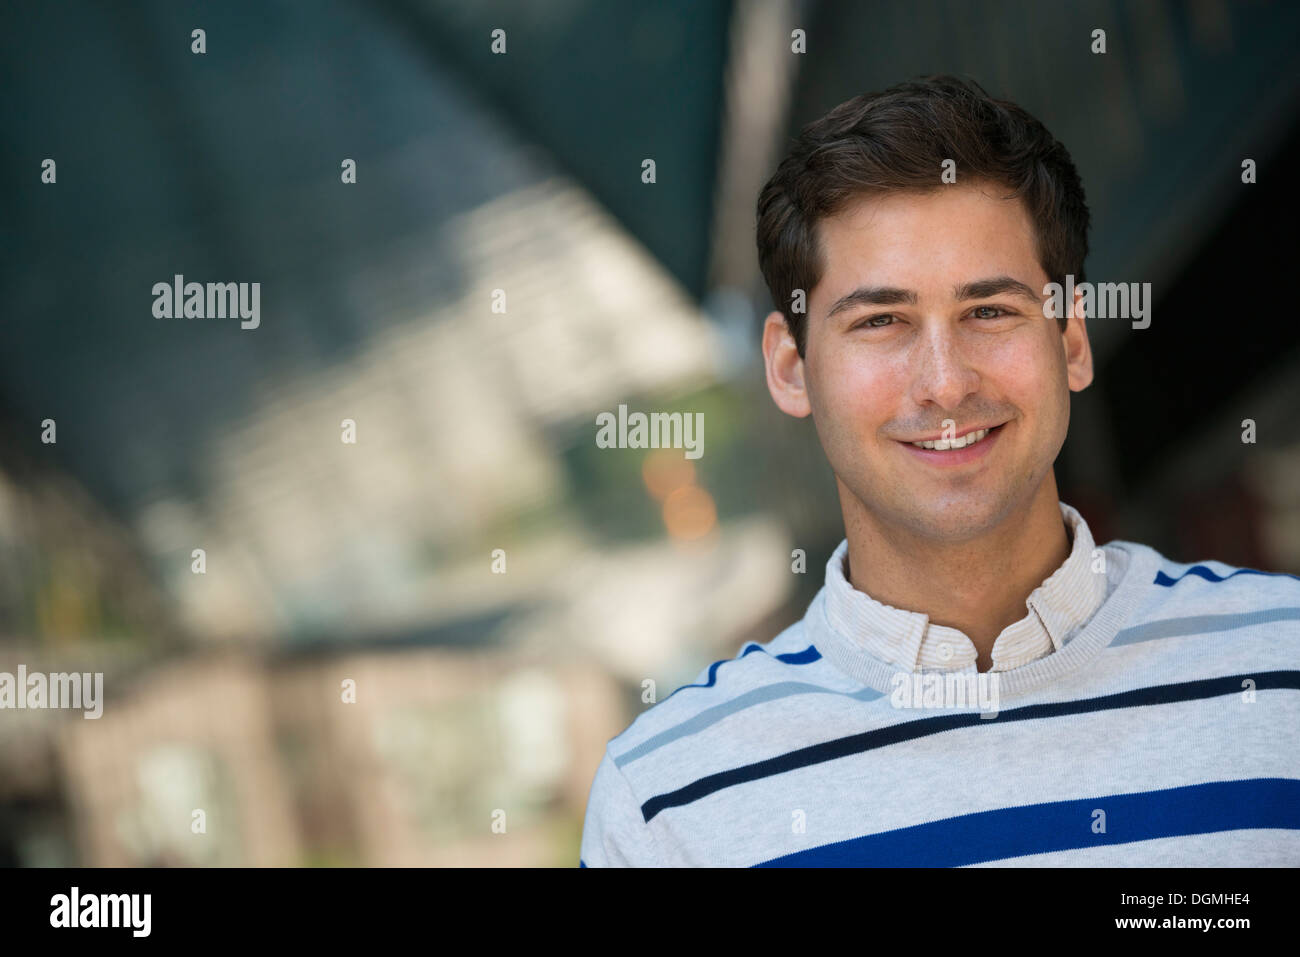 Business people on the move. A young man in a striped sweater looking at the camera. - Stock Image